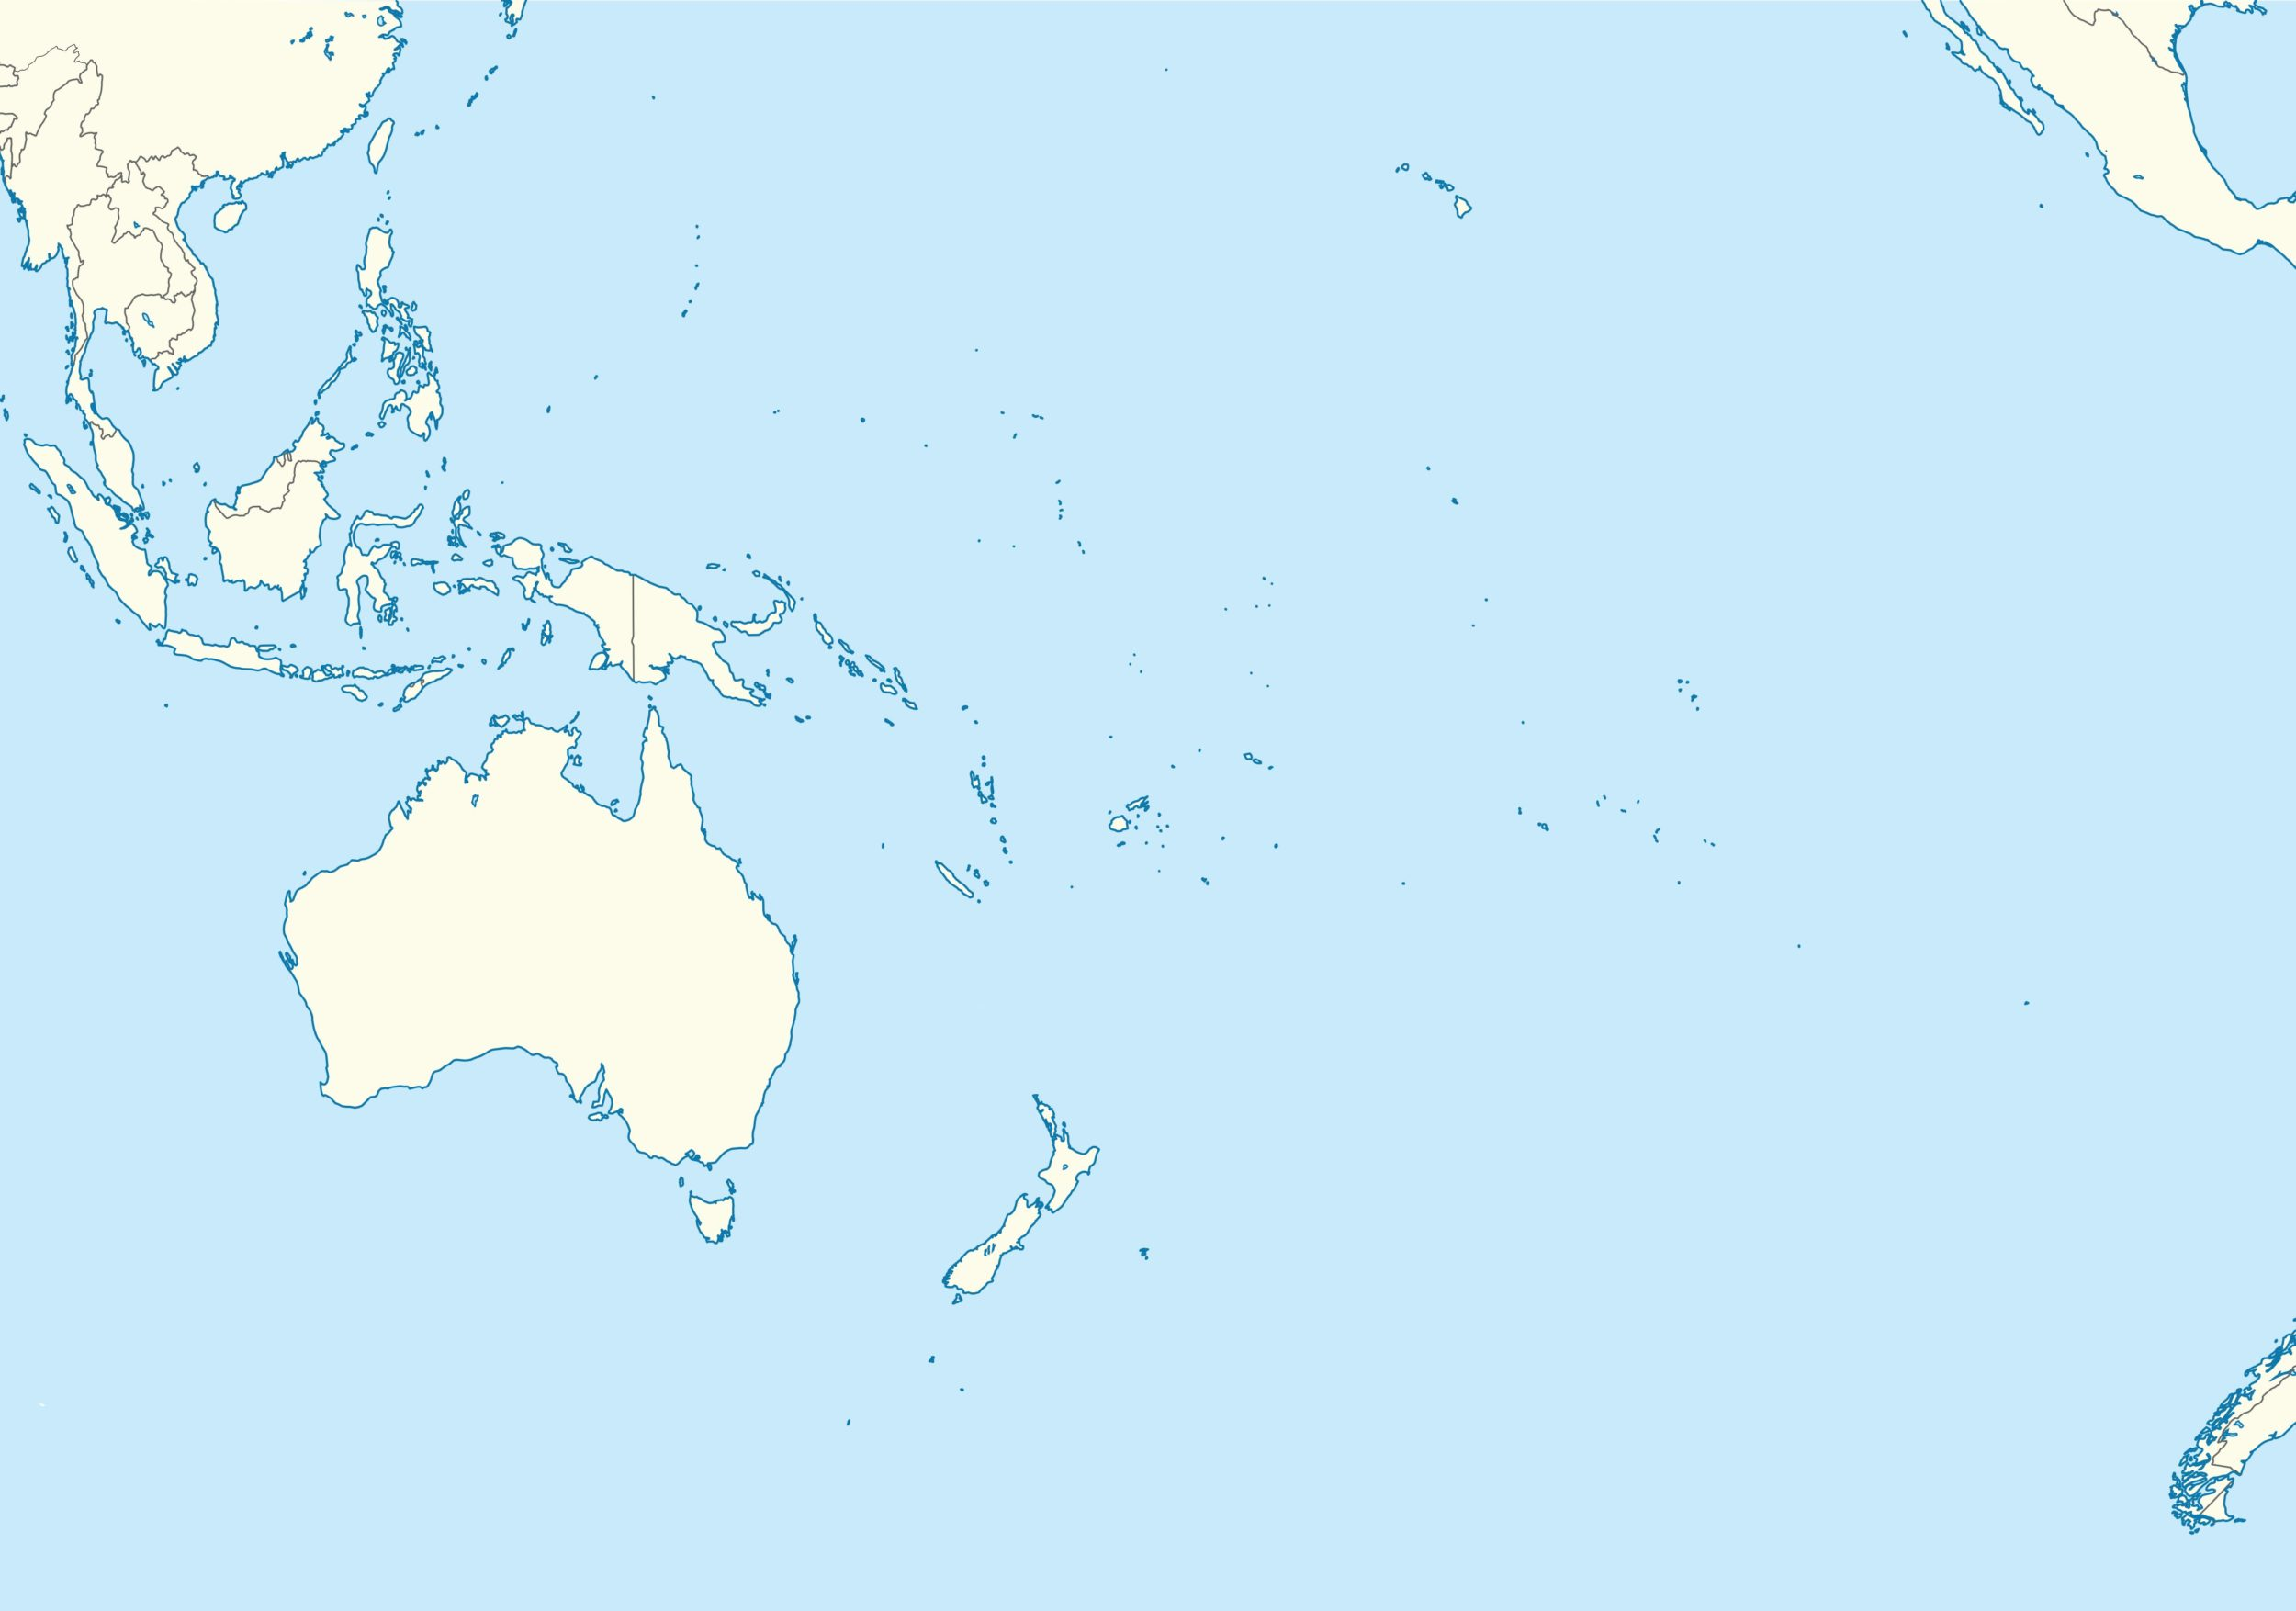 Printable Outline Map of Oceania